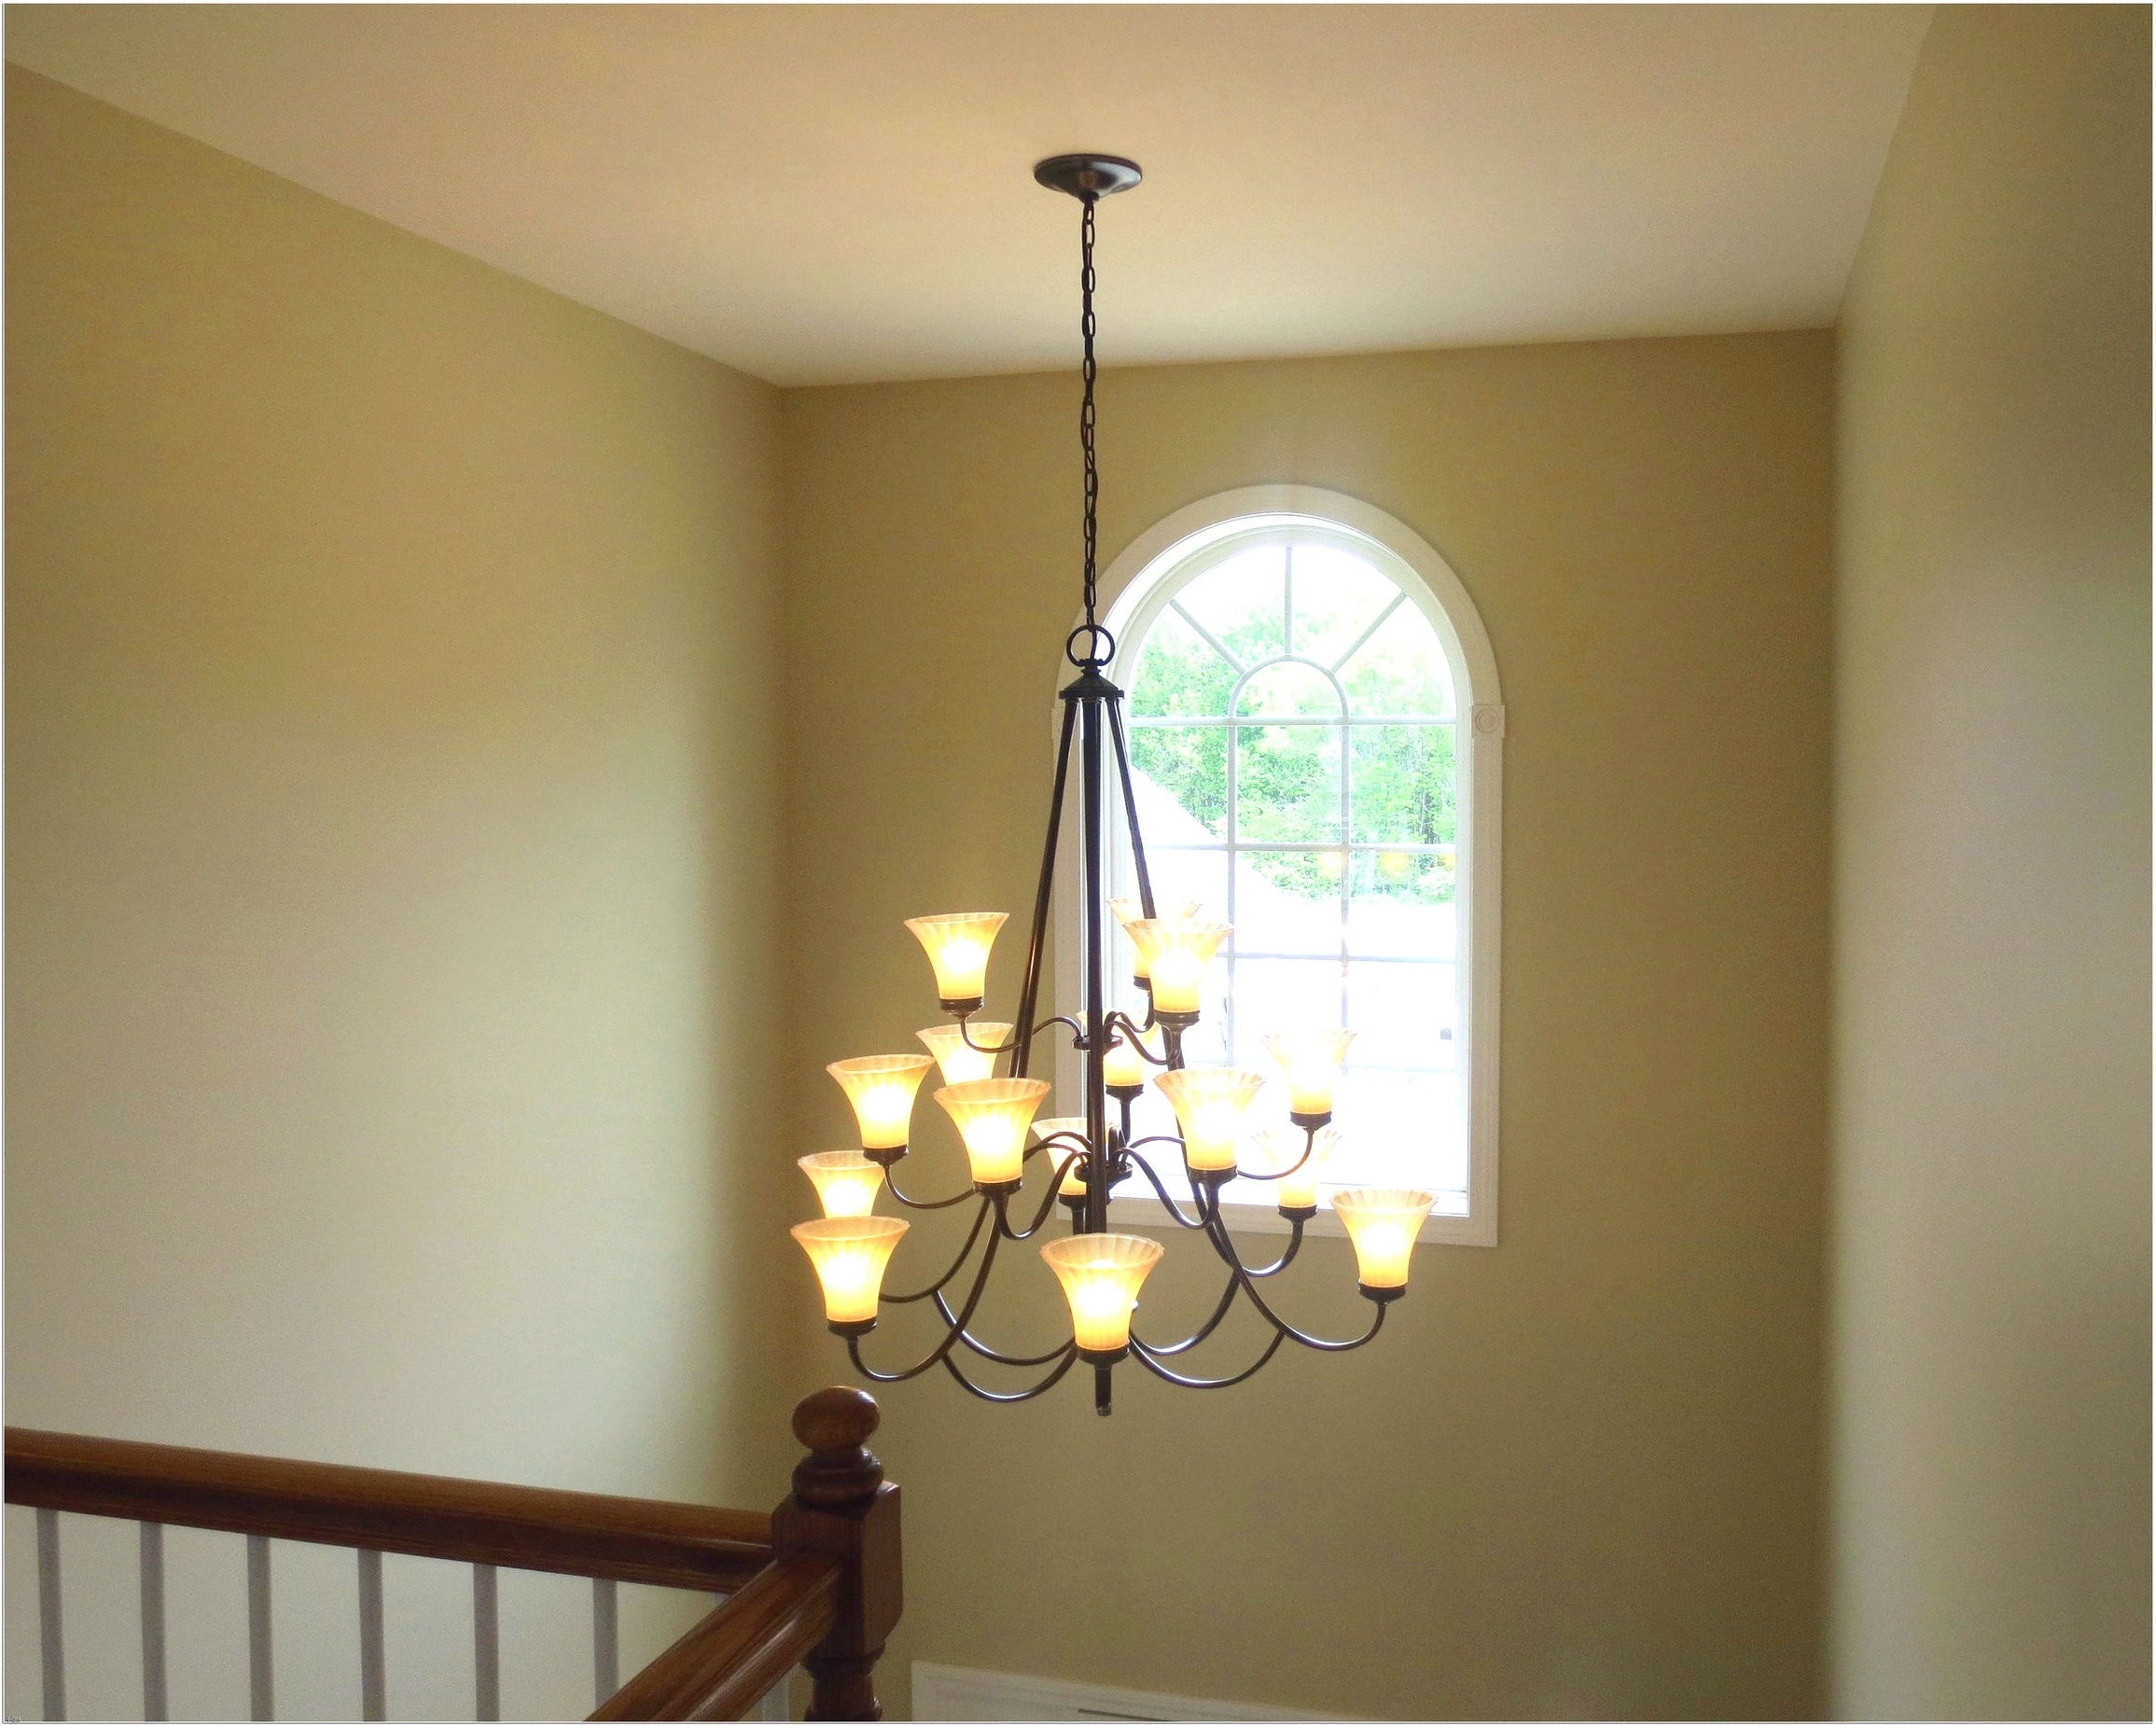 Most Recent Stairwell Chandelier Lighting Intended For Stairwell Chandelier Lighting – Chandelier Designs (View 6 of 15)